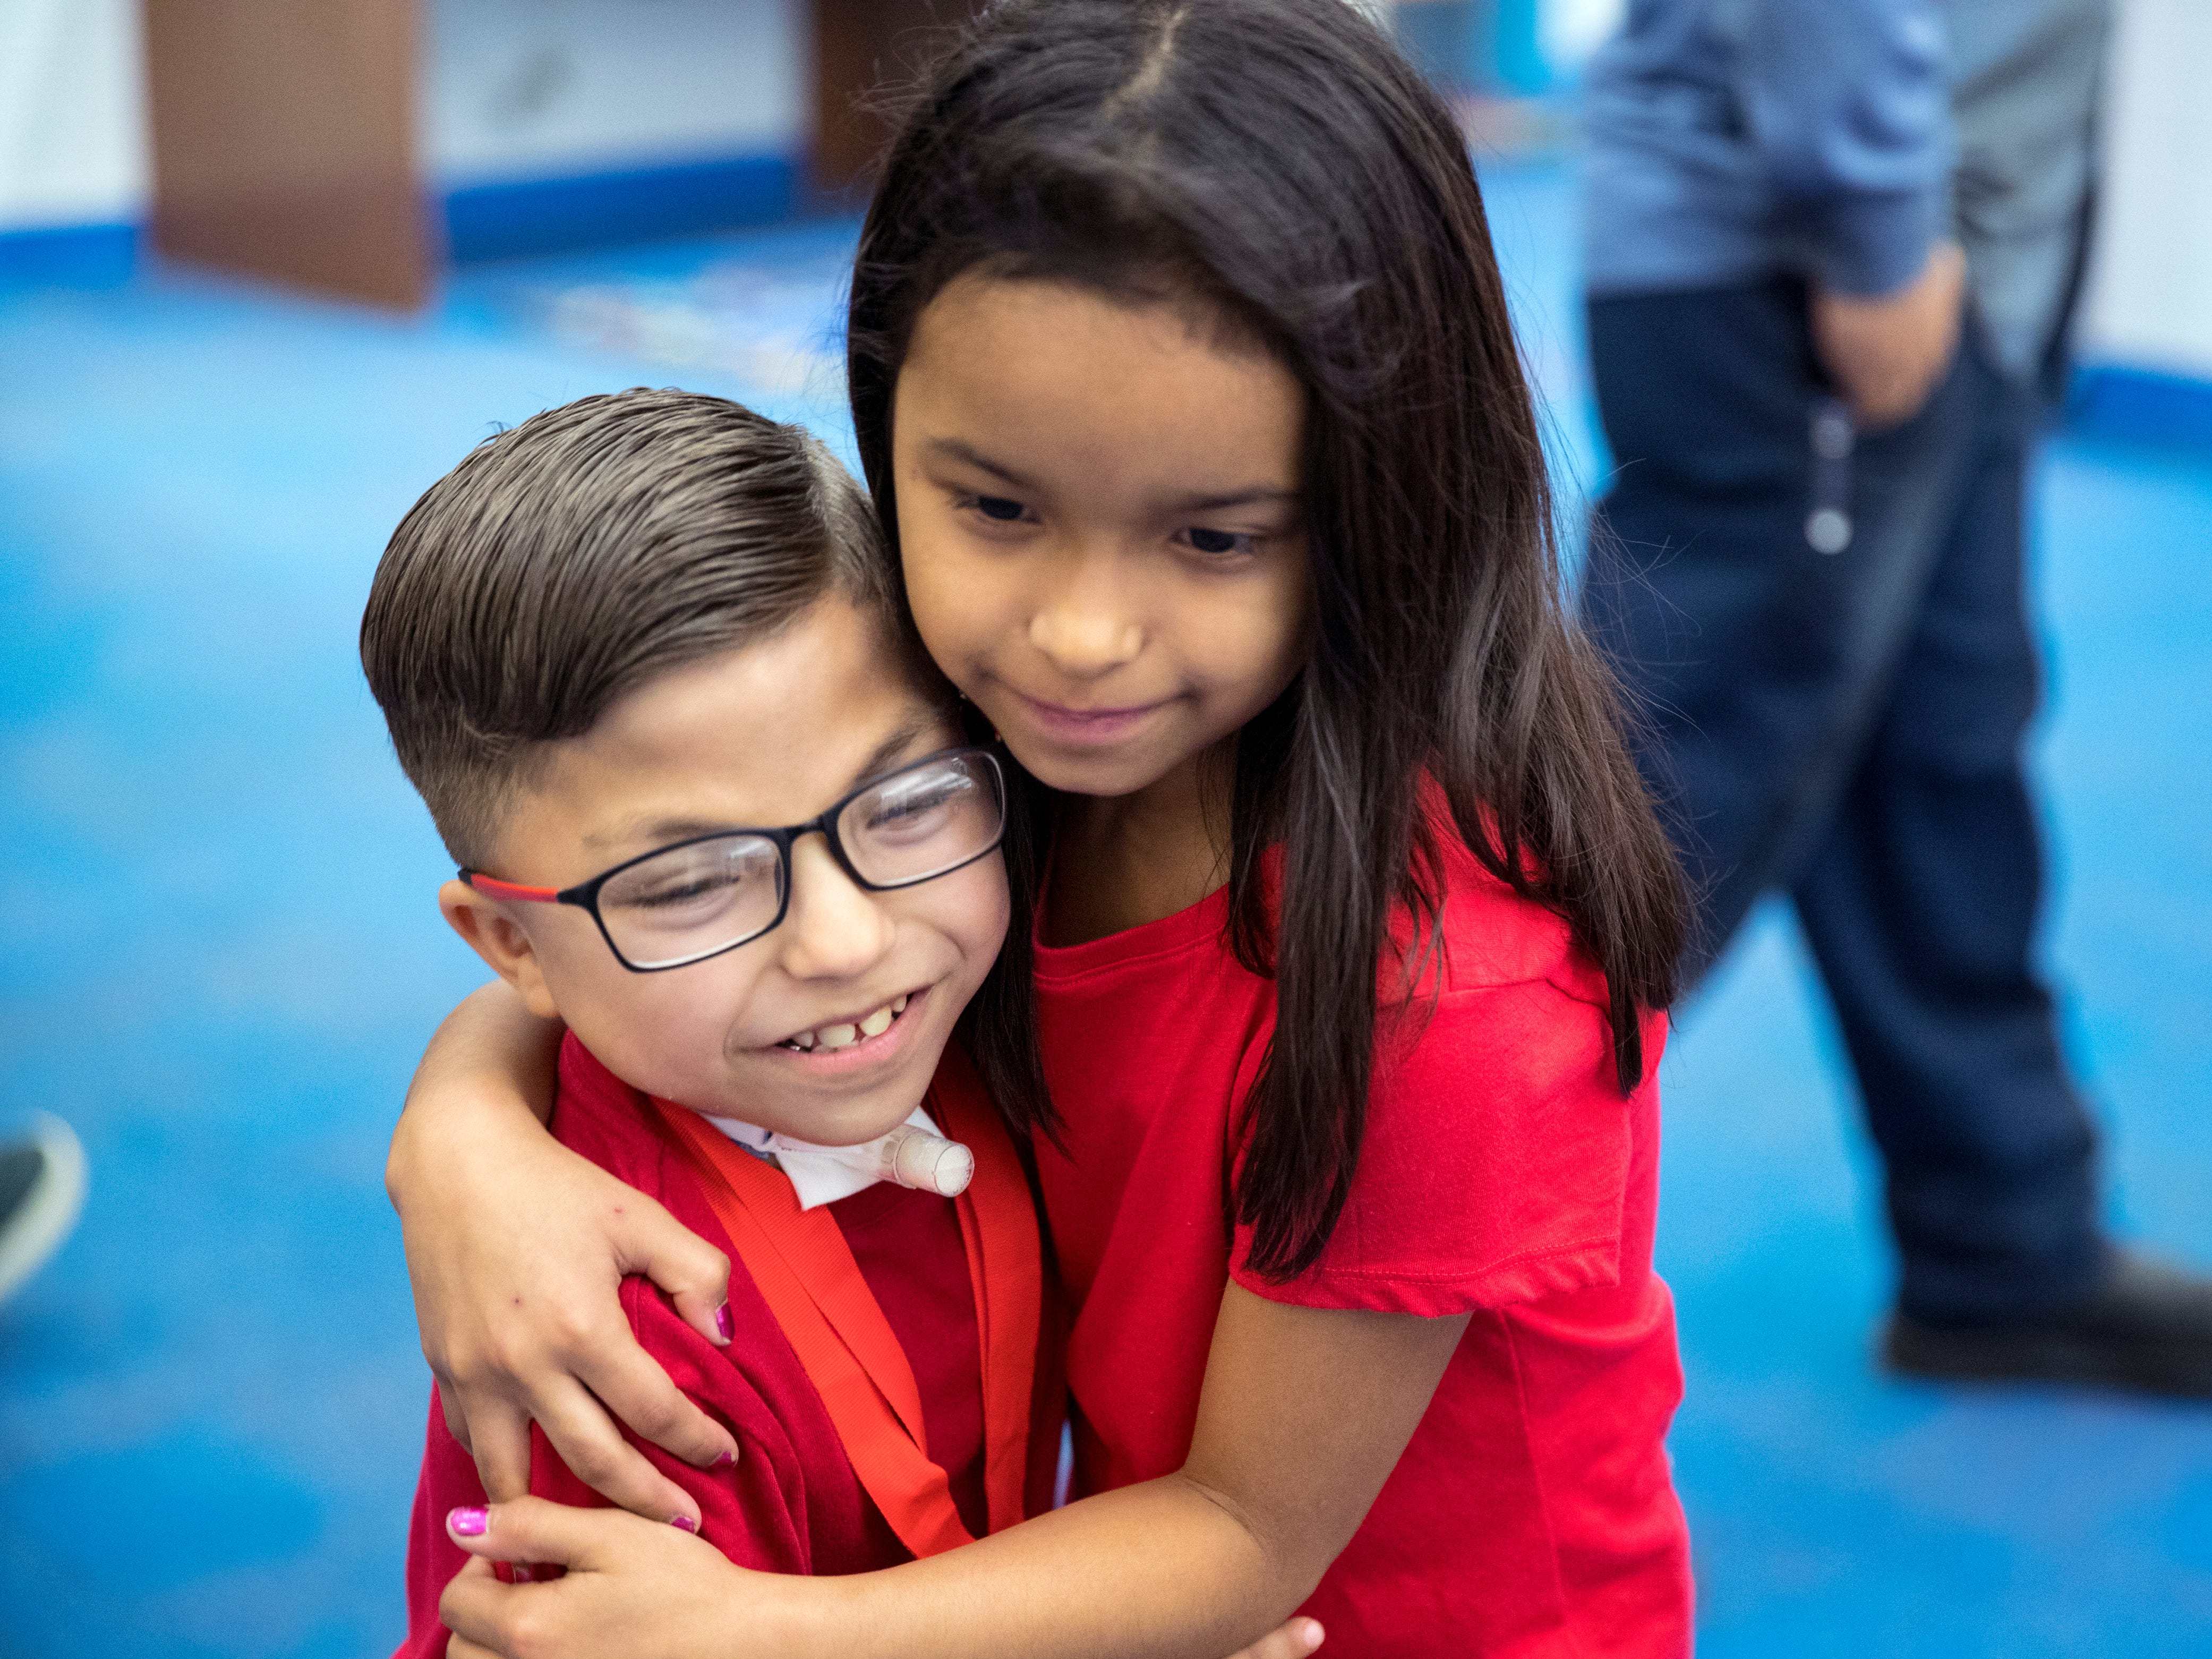 """Ethann Valdez, 9, gets a hug from his sister, Chastity Hernandez, 7, following a """"Best Wishes Parade"""" in his honor at Garcia Elementary School on Wednesday, April 17, 2019. Diagnosed at the age of five with geleophysic dysplasia (known as dwarfism), Ethann will be out of school for the rest of the year as he undergoes open heart surgery for a valve replacement to the main aorta of his heart. The school wanted to send him off with a """"Best Wishes Parade"""" before he left."""